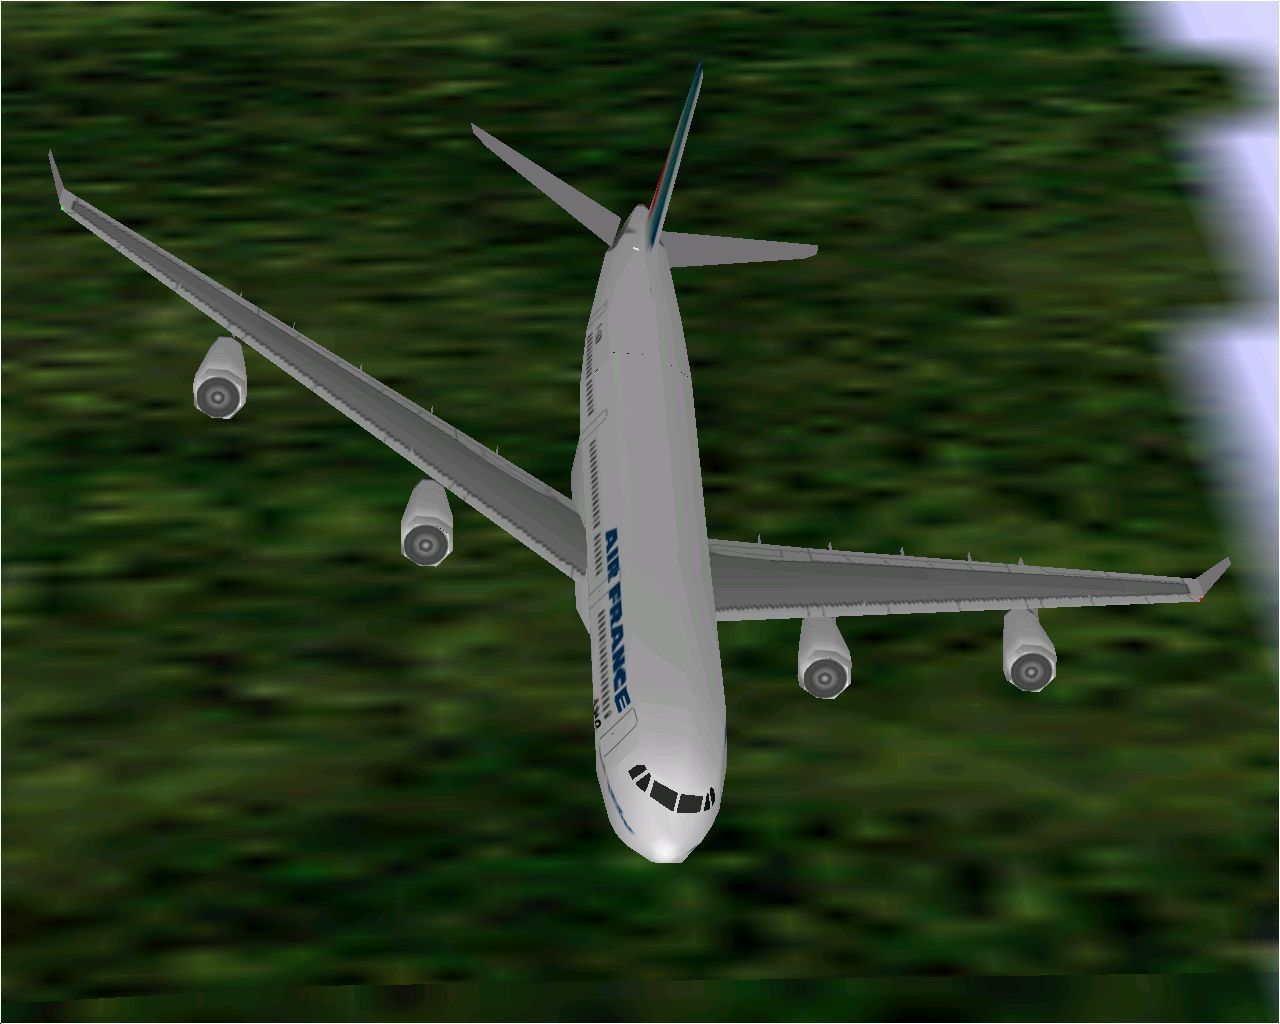 Airbus 2000: Special Edition Windows Air France's Airbus A340-311 in Microsoft Flight Simulator 98.